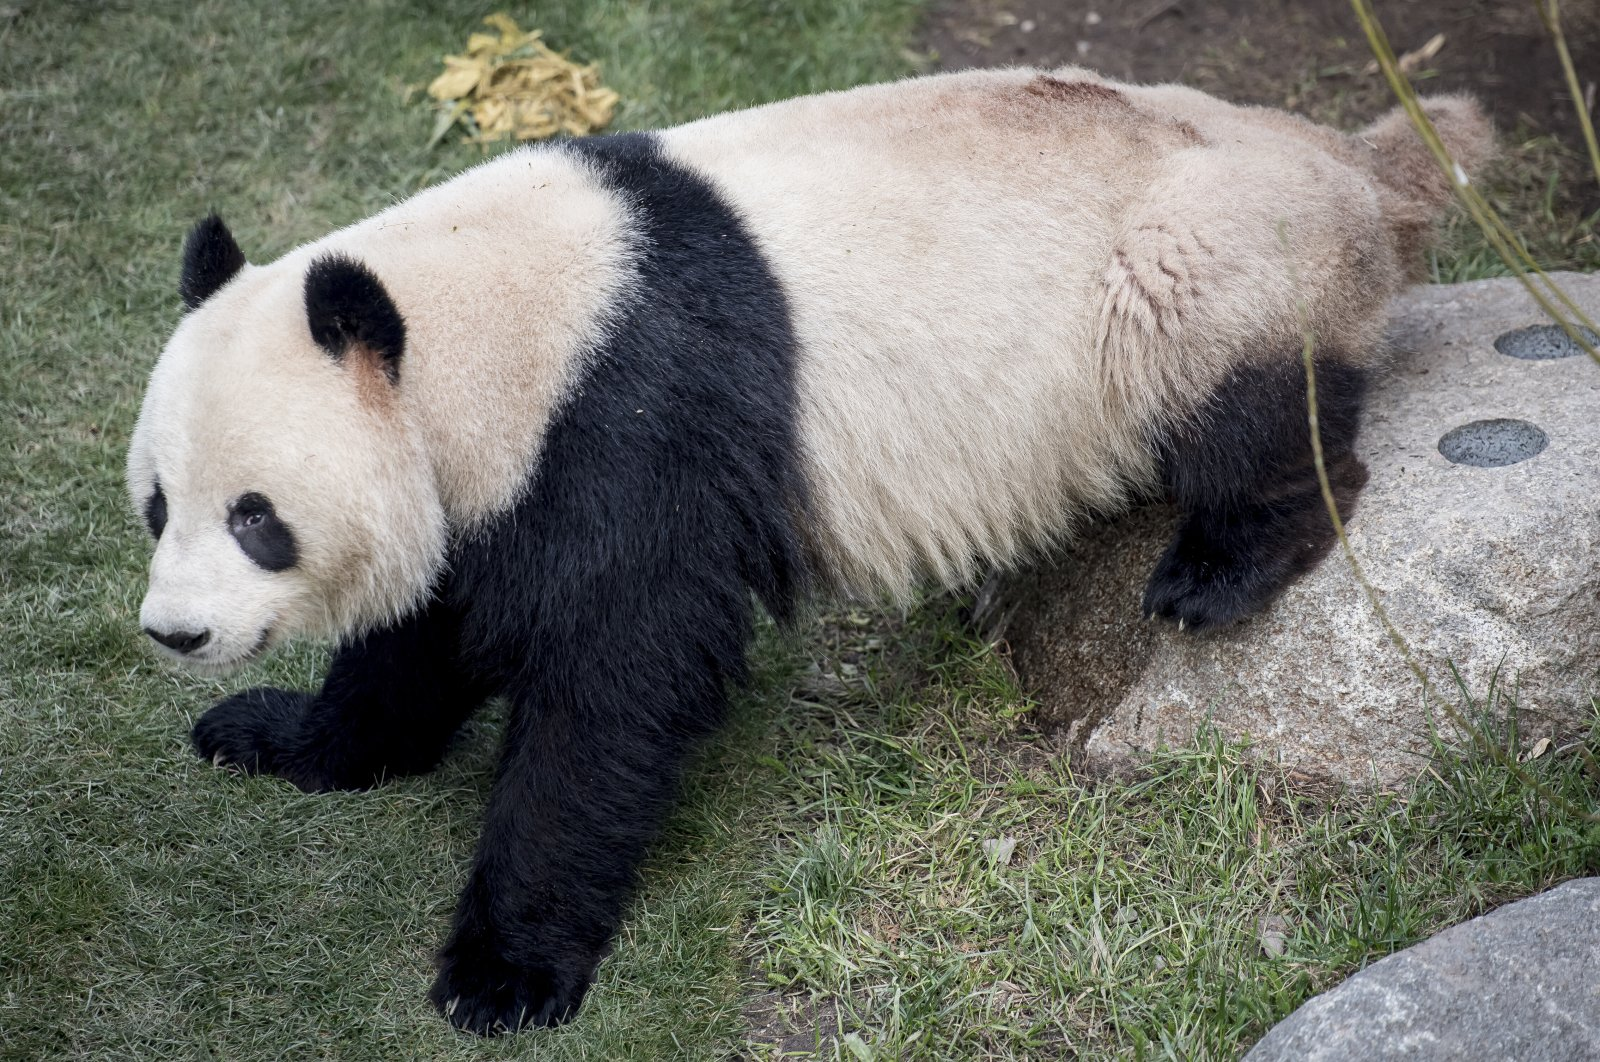 Xing Er, one of Copenhagen Zoo's giant pandas, escaped from its enclosure, Cophenhagen, on June 8, 2020. (AP Photo)